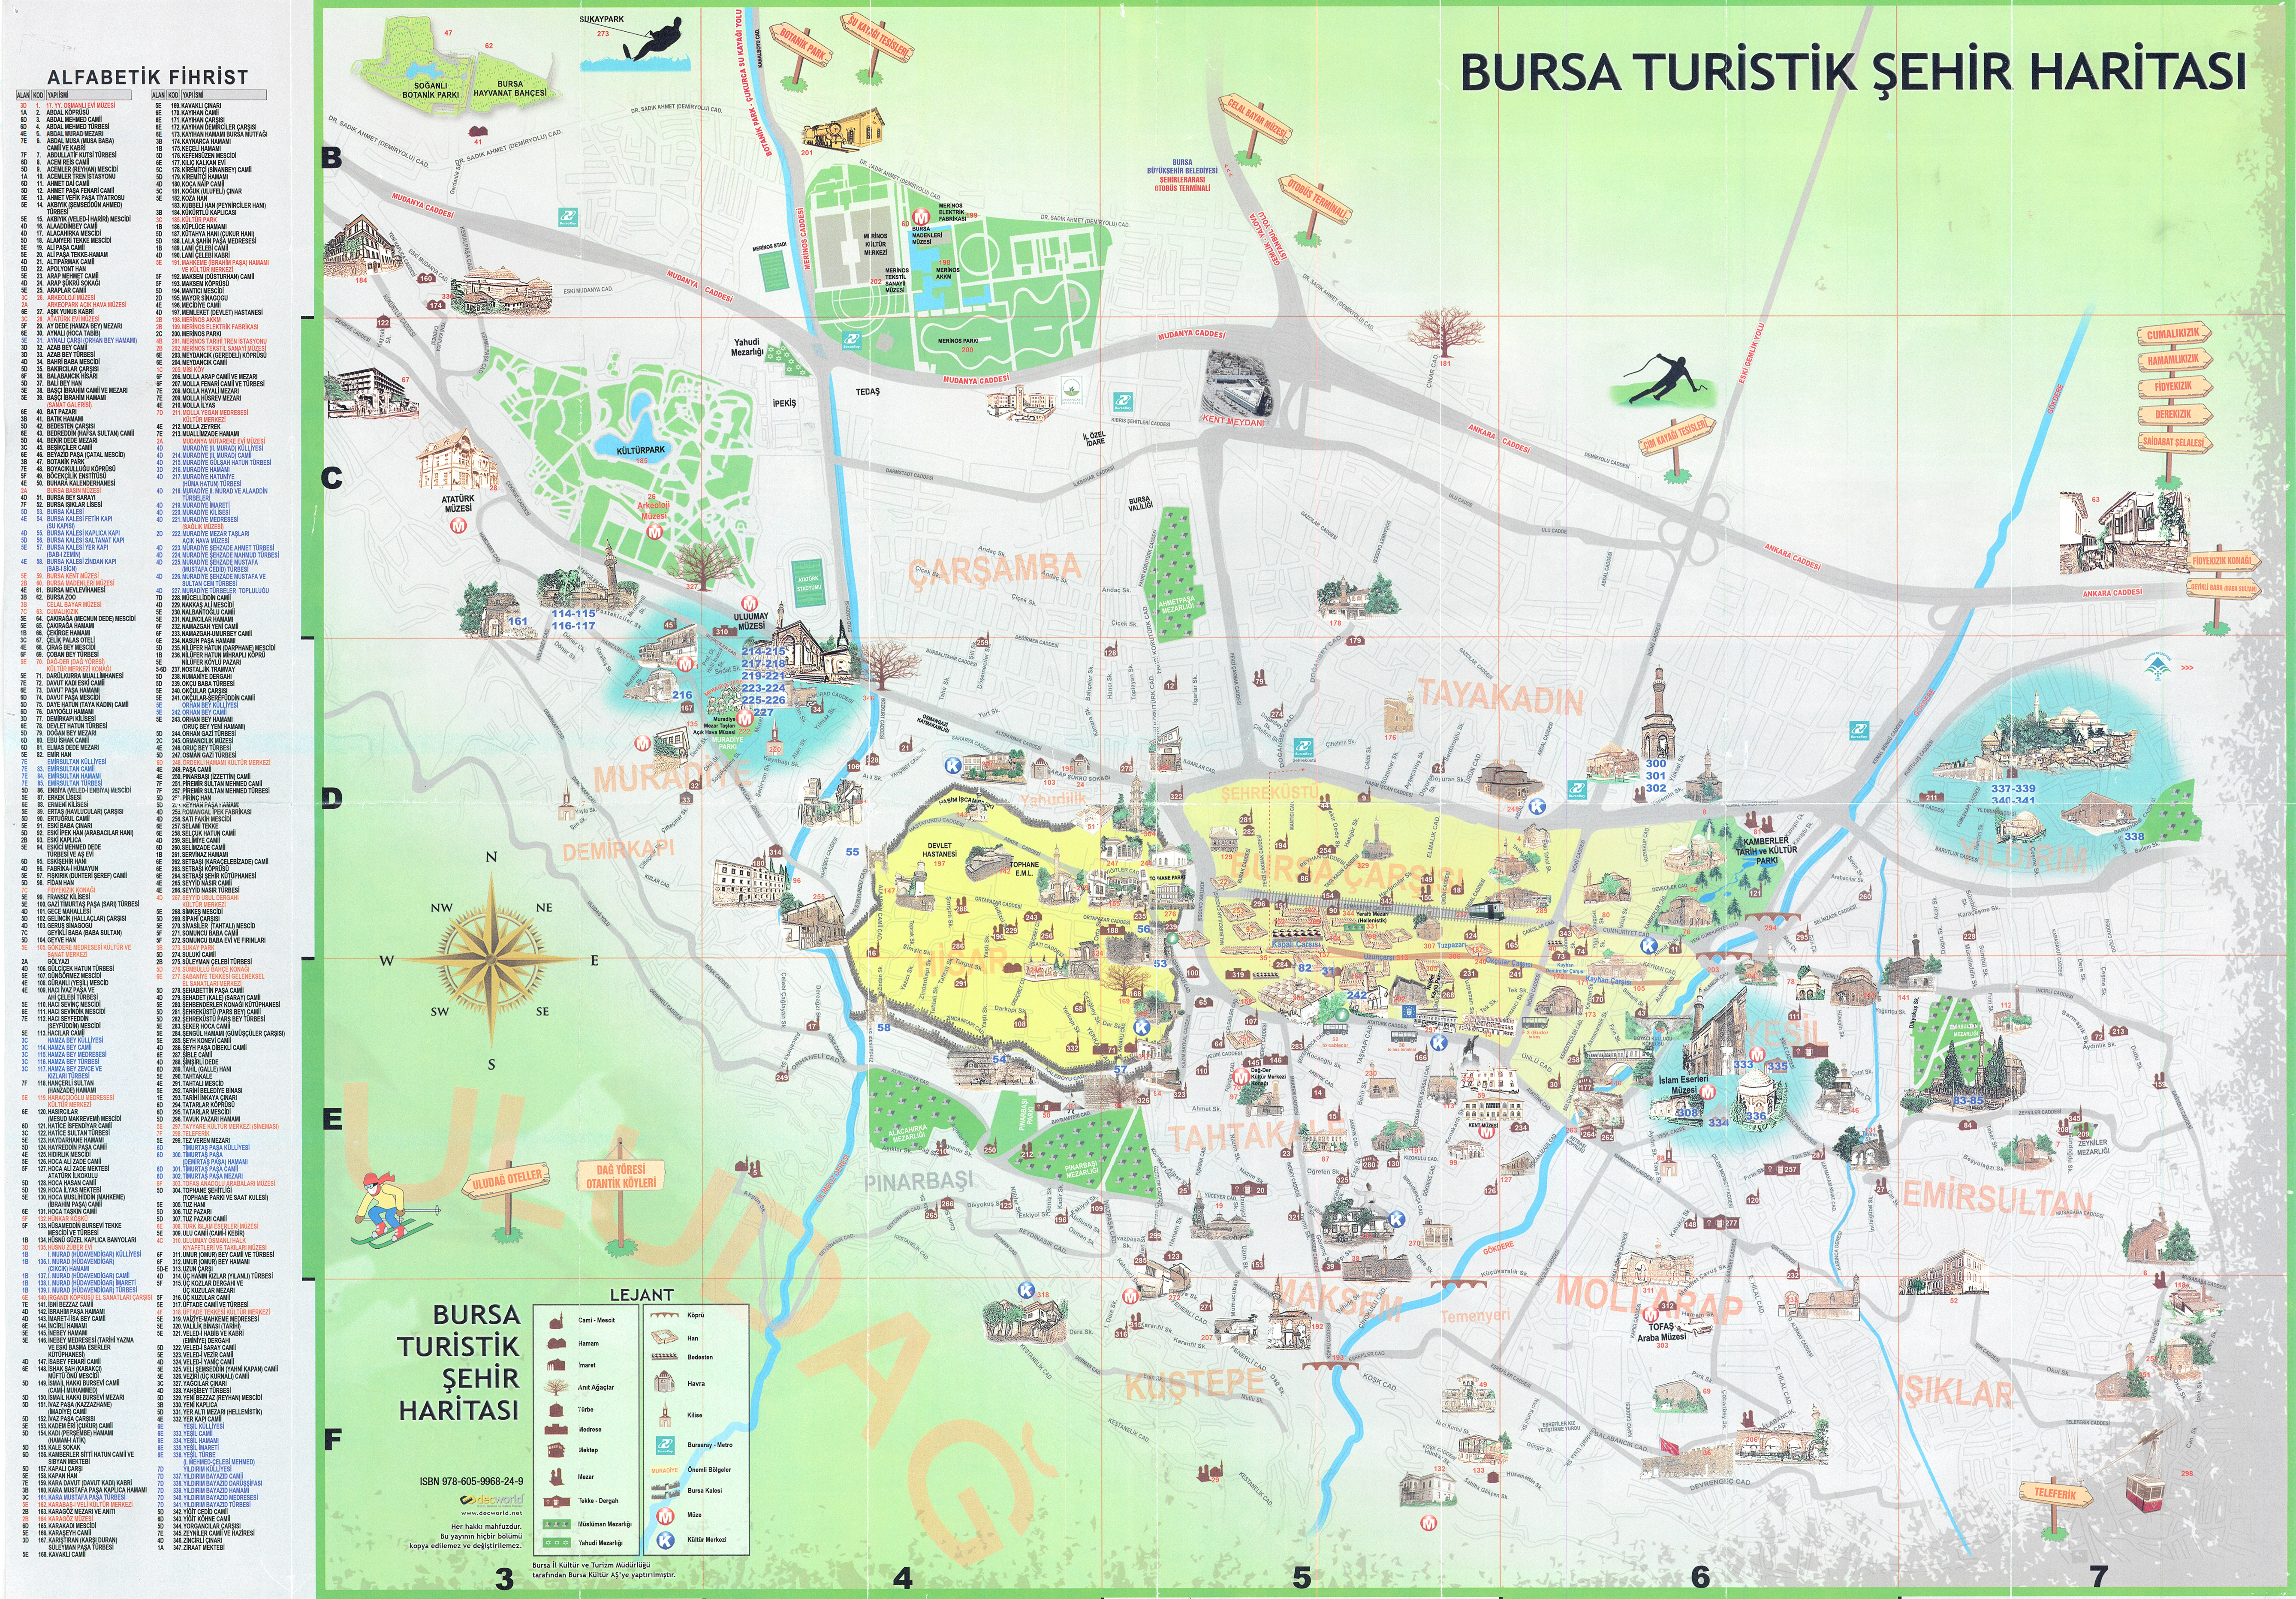 Bursa City Center Tourism Map